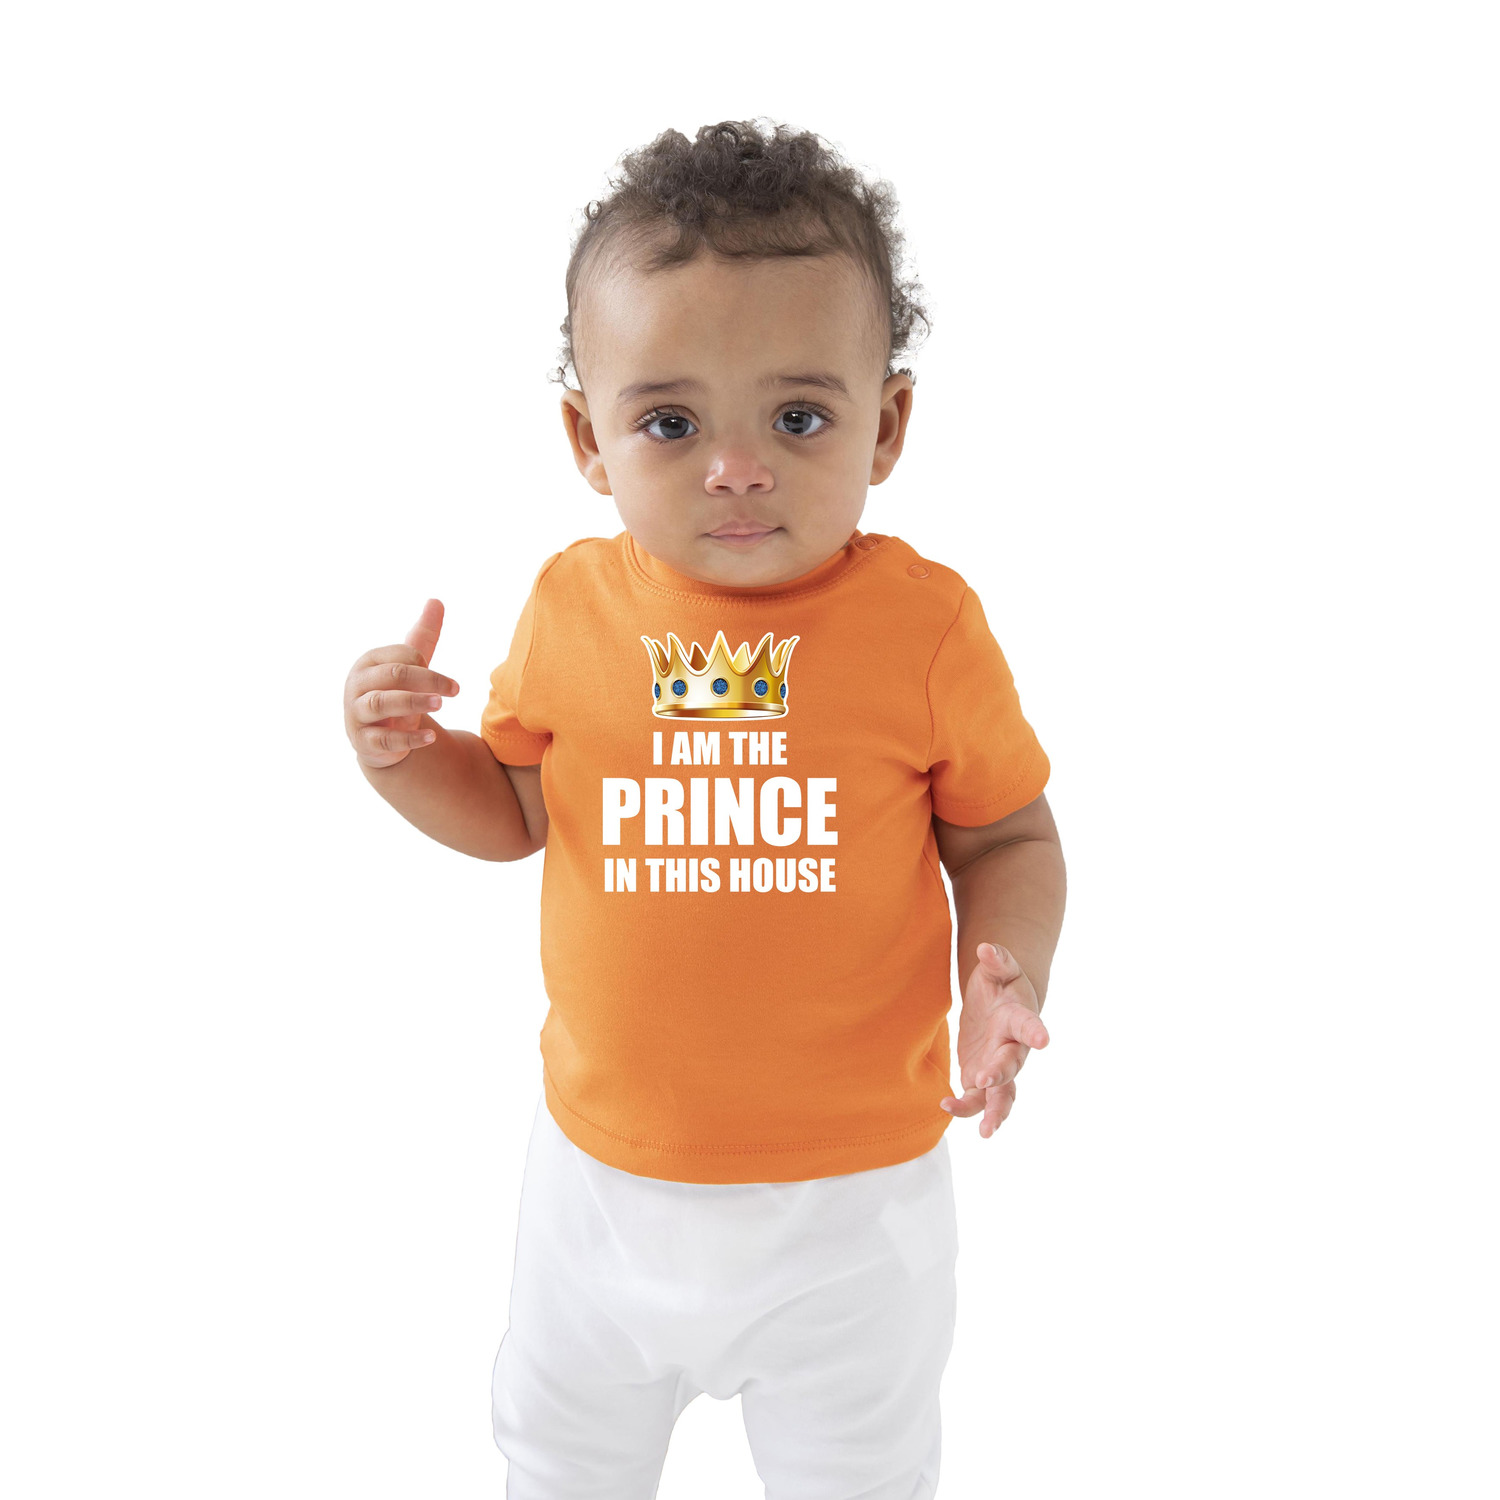 I am the prince in this house t-shirt oranje Koningsdag voor baby-peuters